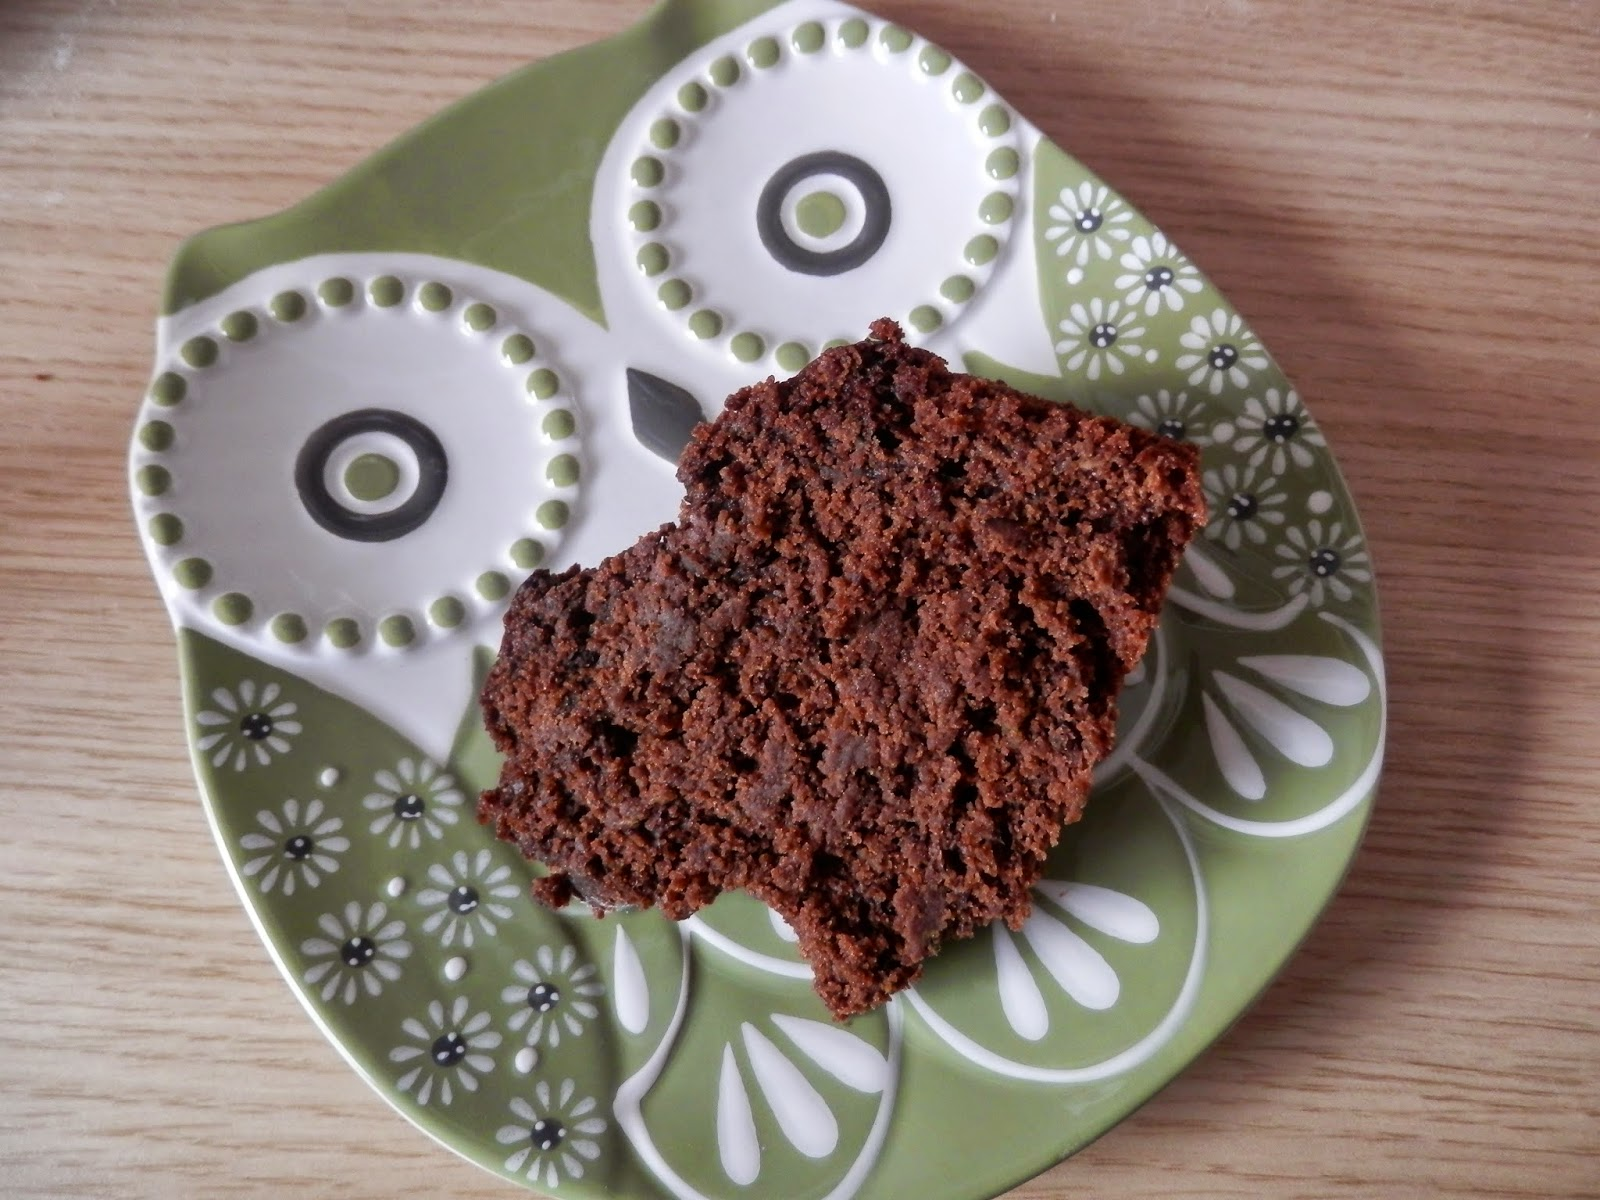 vegan chocolate courgette cake secondhandsusie.blogspot.co.uk